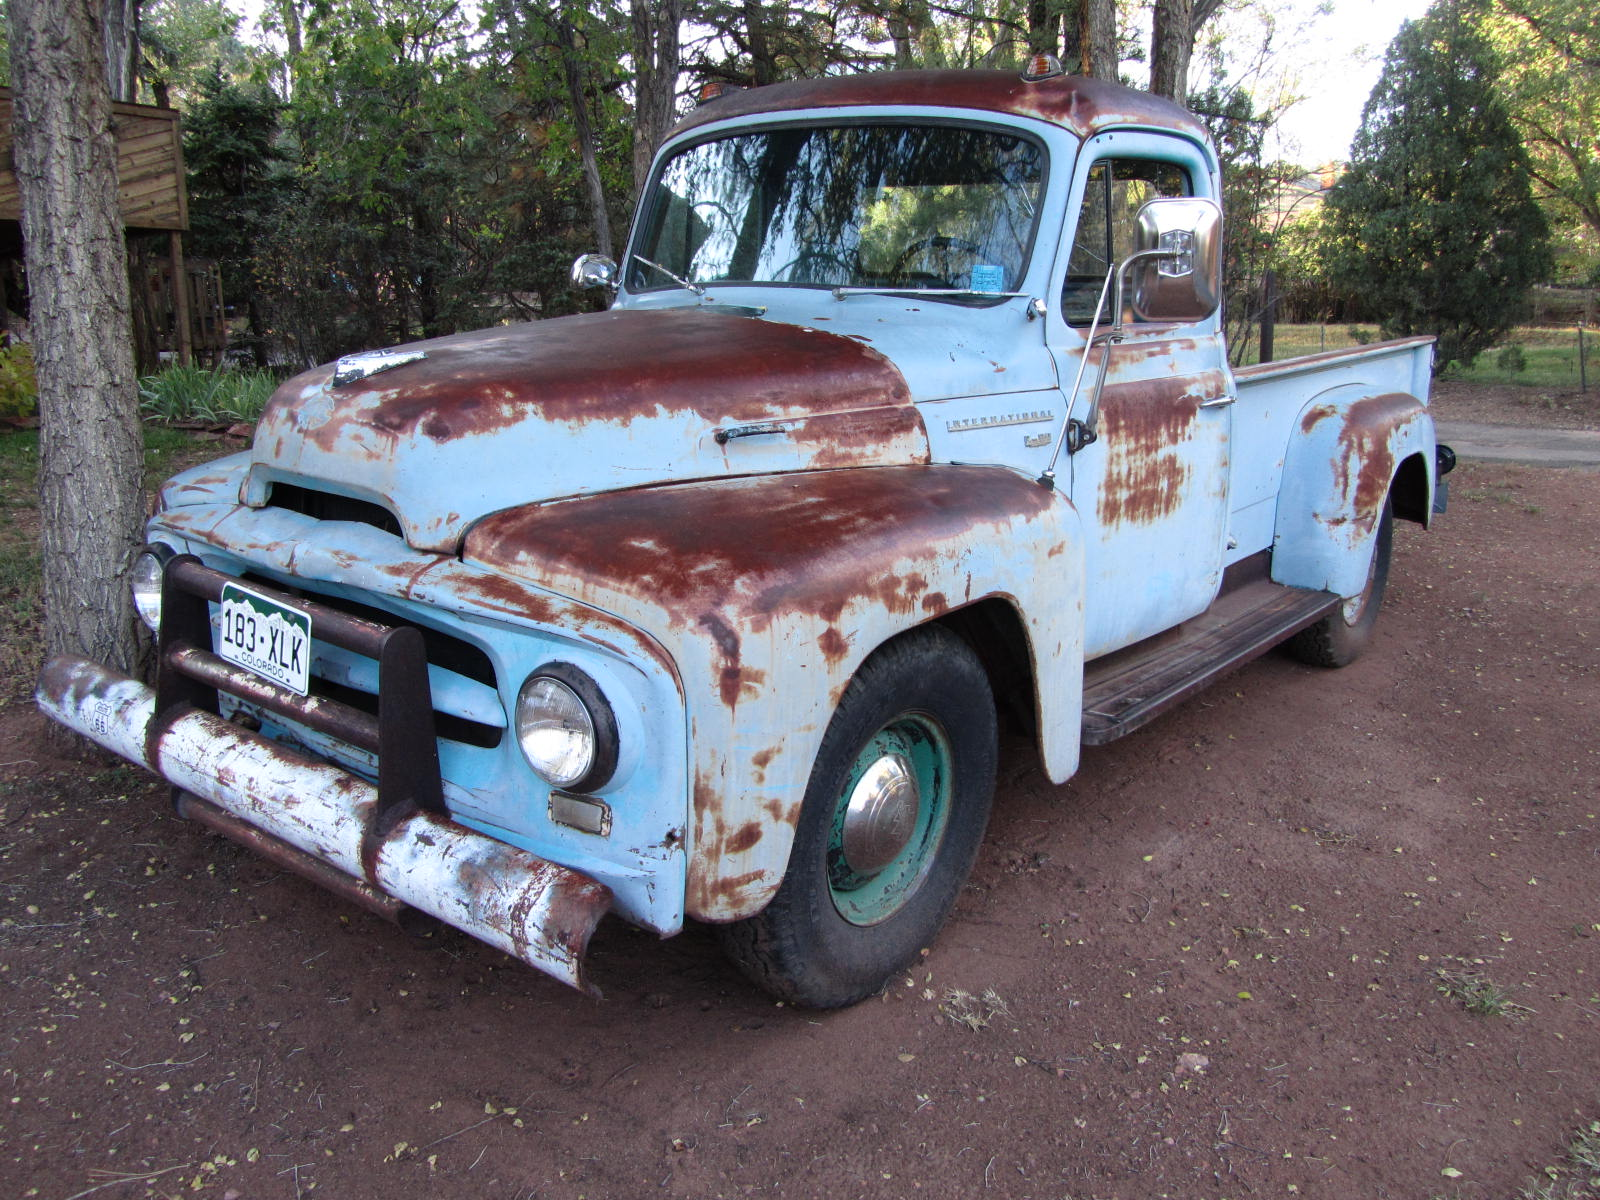 autoliterate: 1953 International pickup & American landscapes